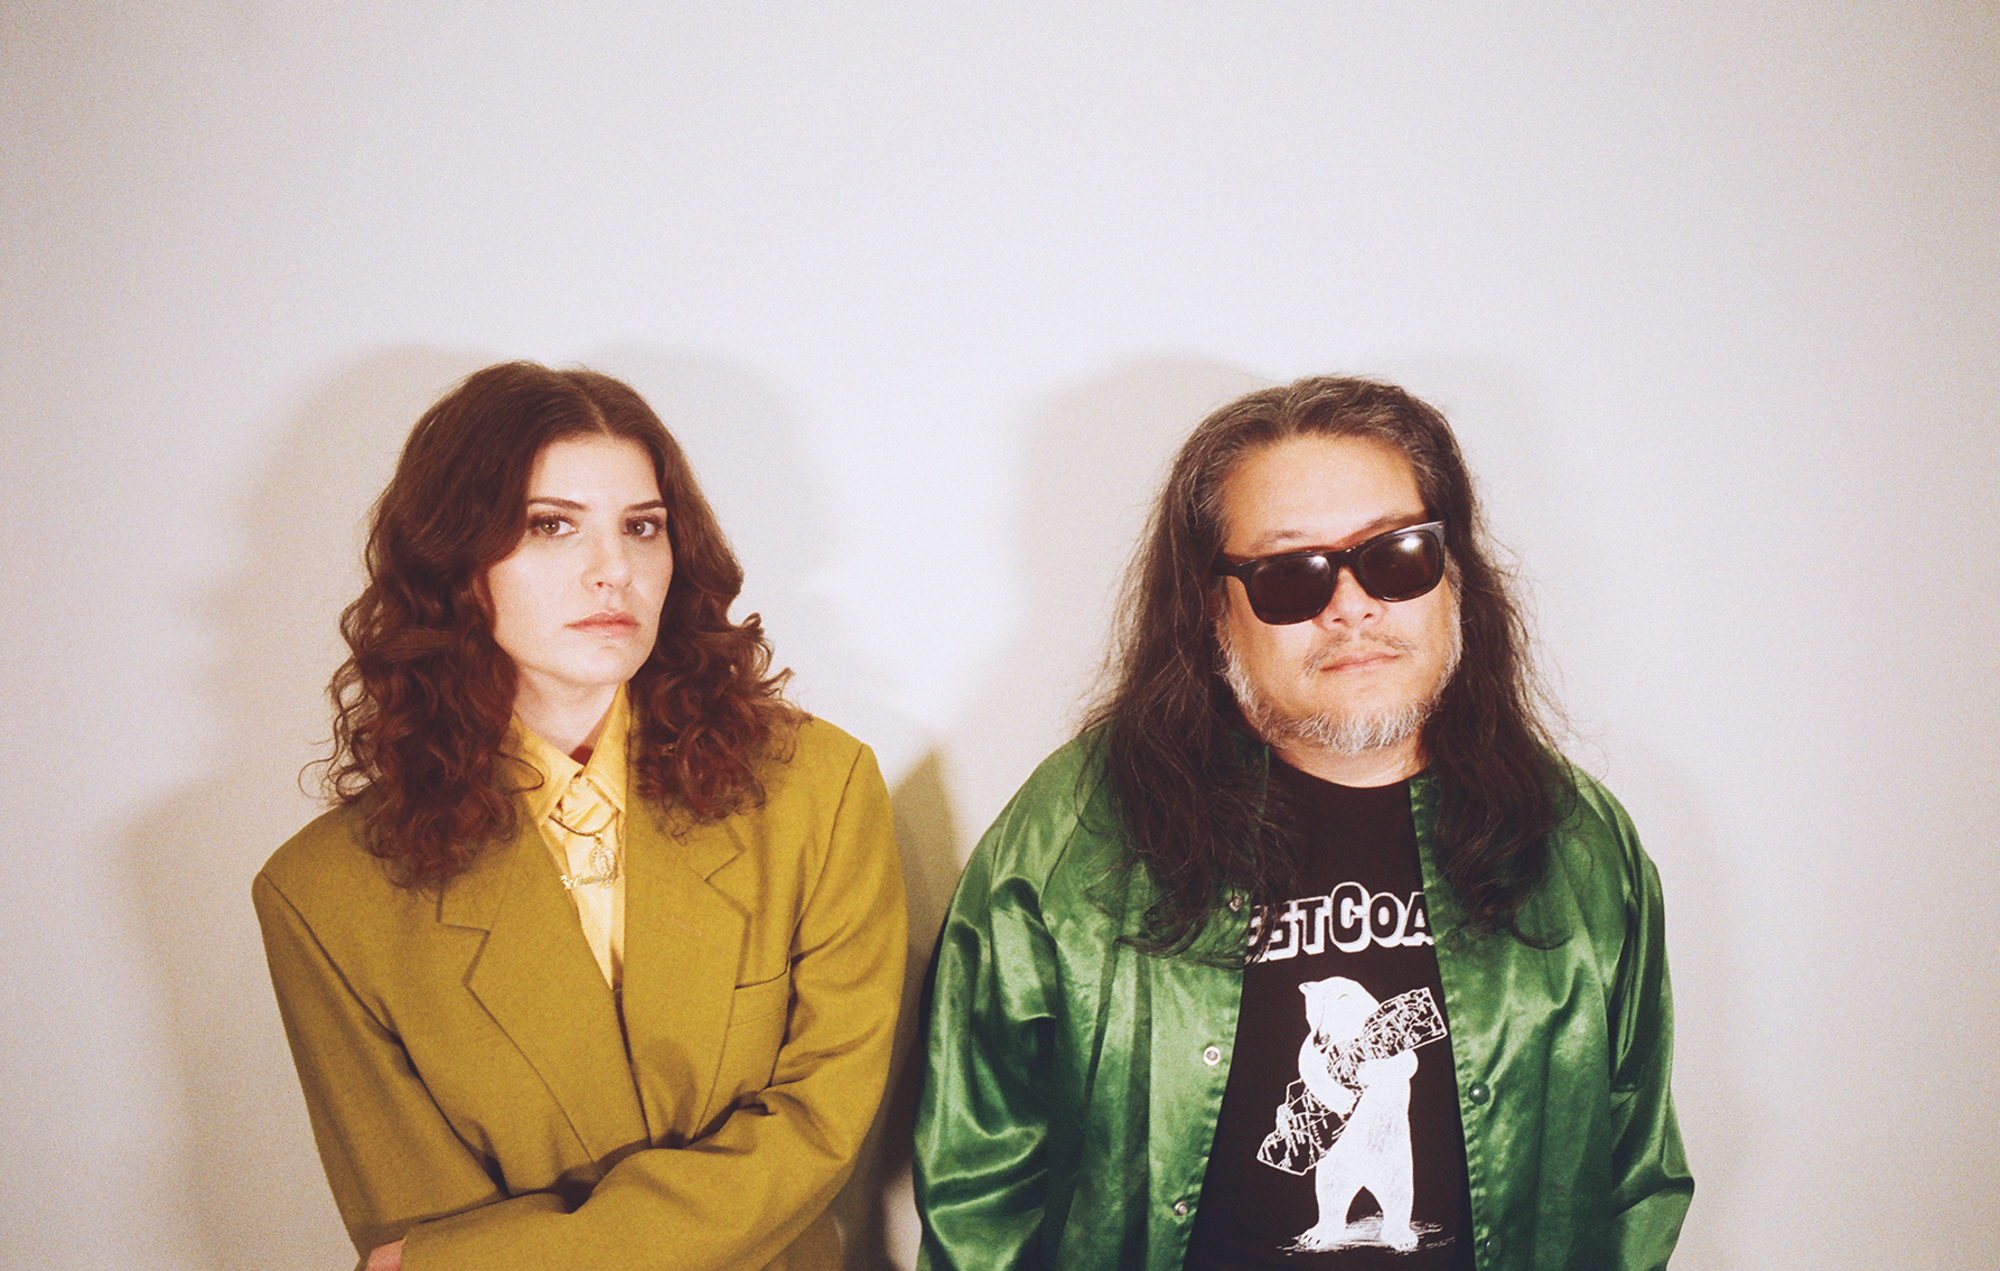 Best Coast's Bethany Cosentino speaks to NME